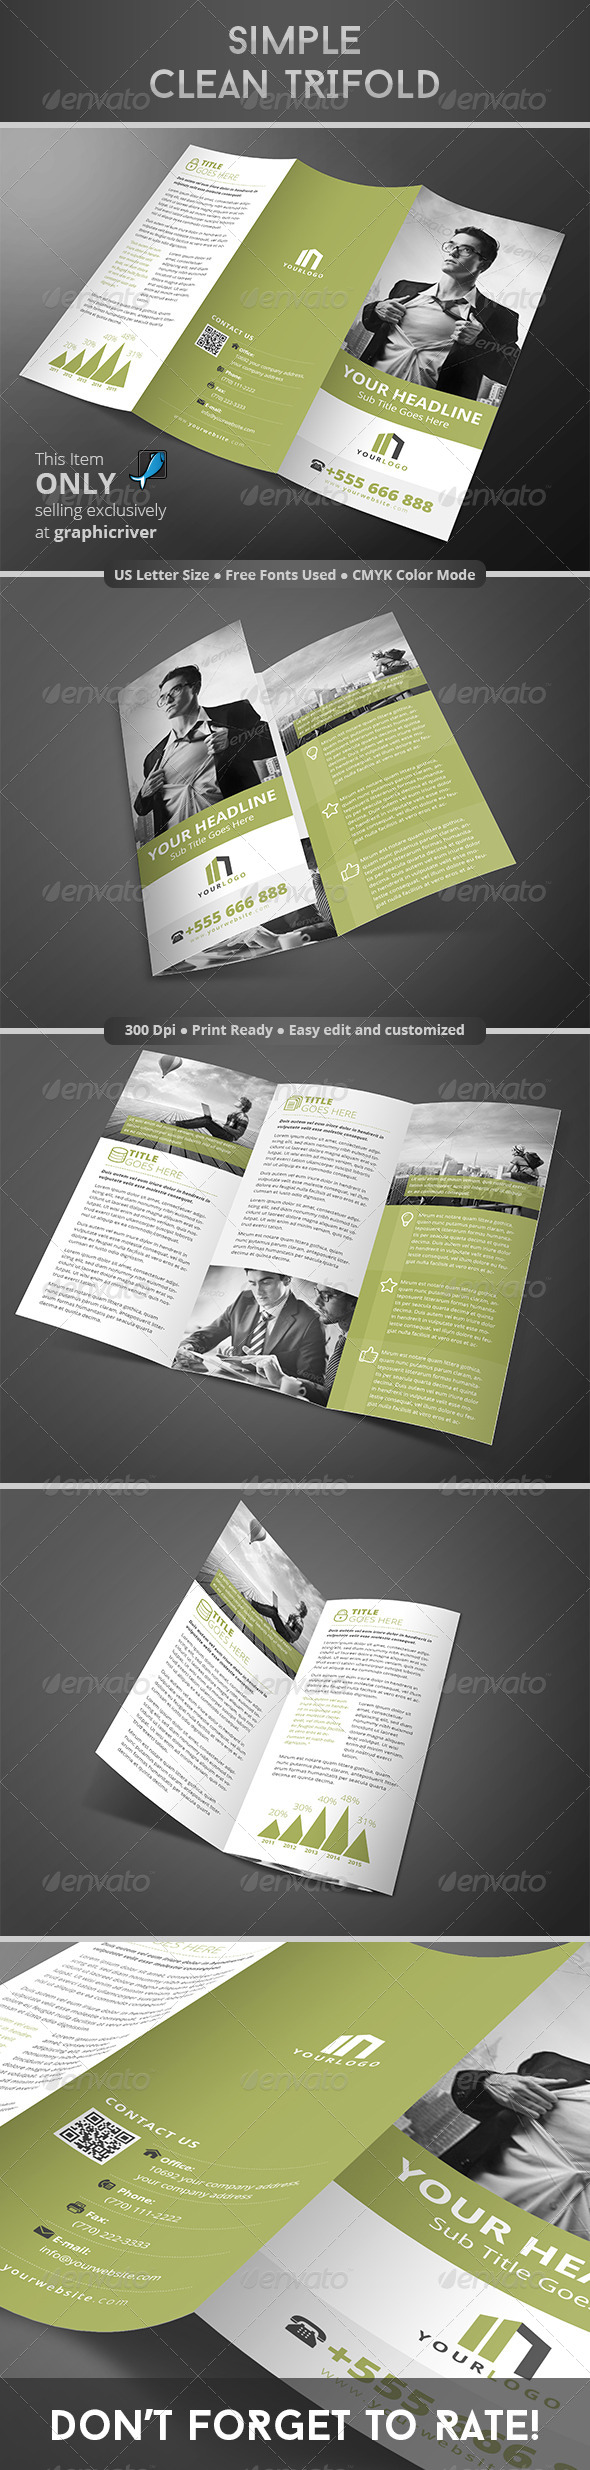 GraphicRiver Simple Clean Trifold 8284380